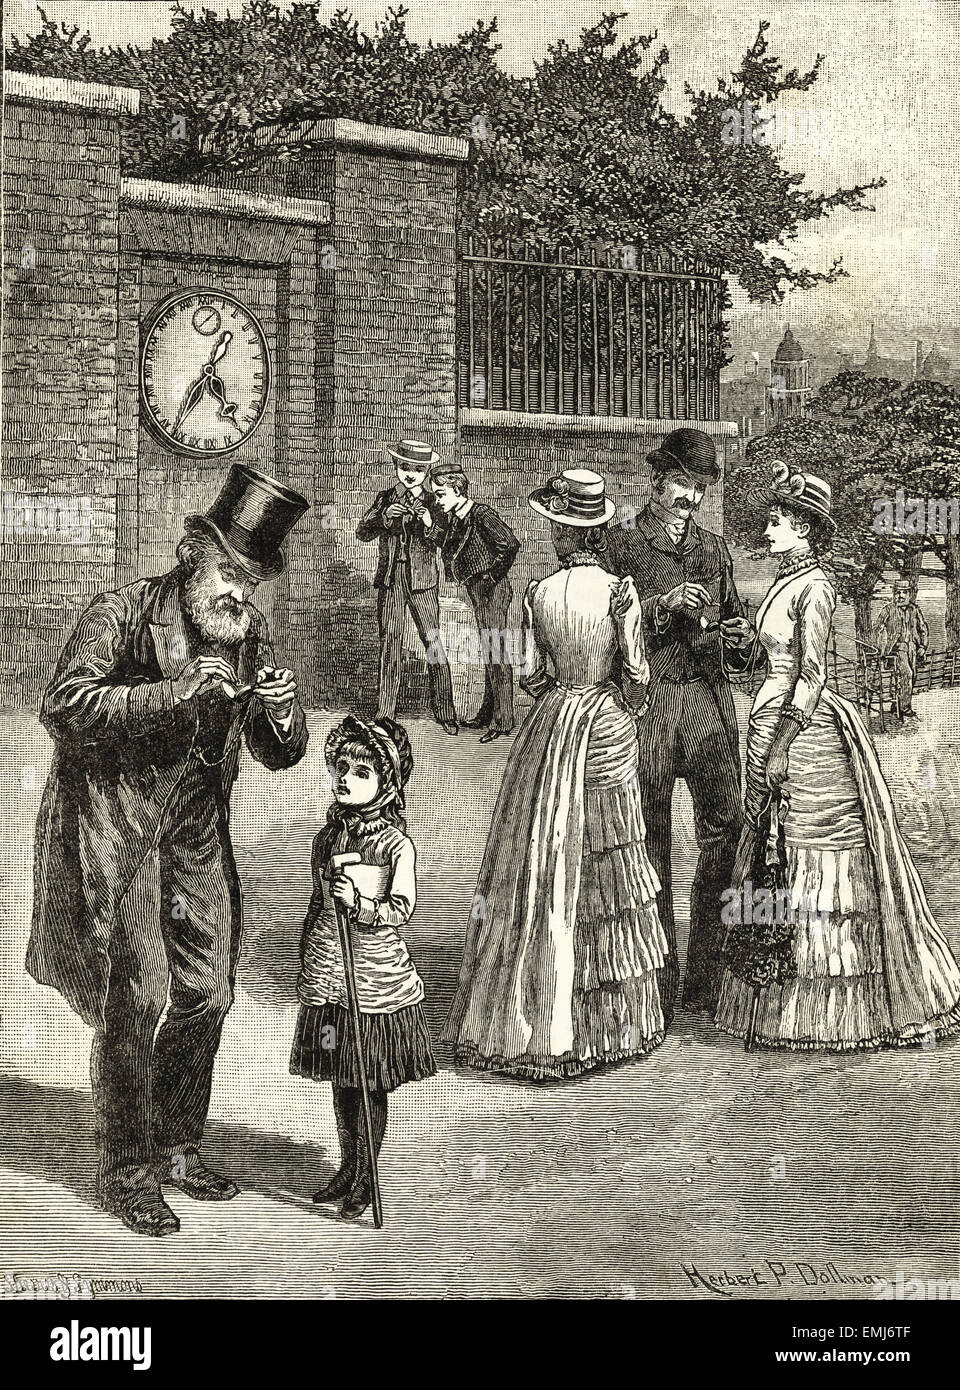 Men & women checking the time. Victorian woodcut engraving dated 1890 - Stock Image